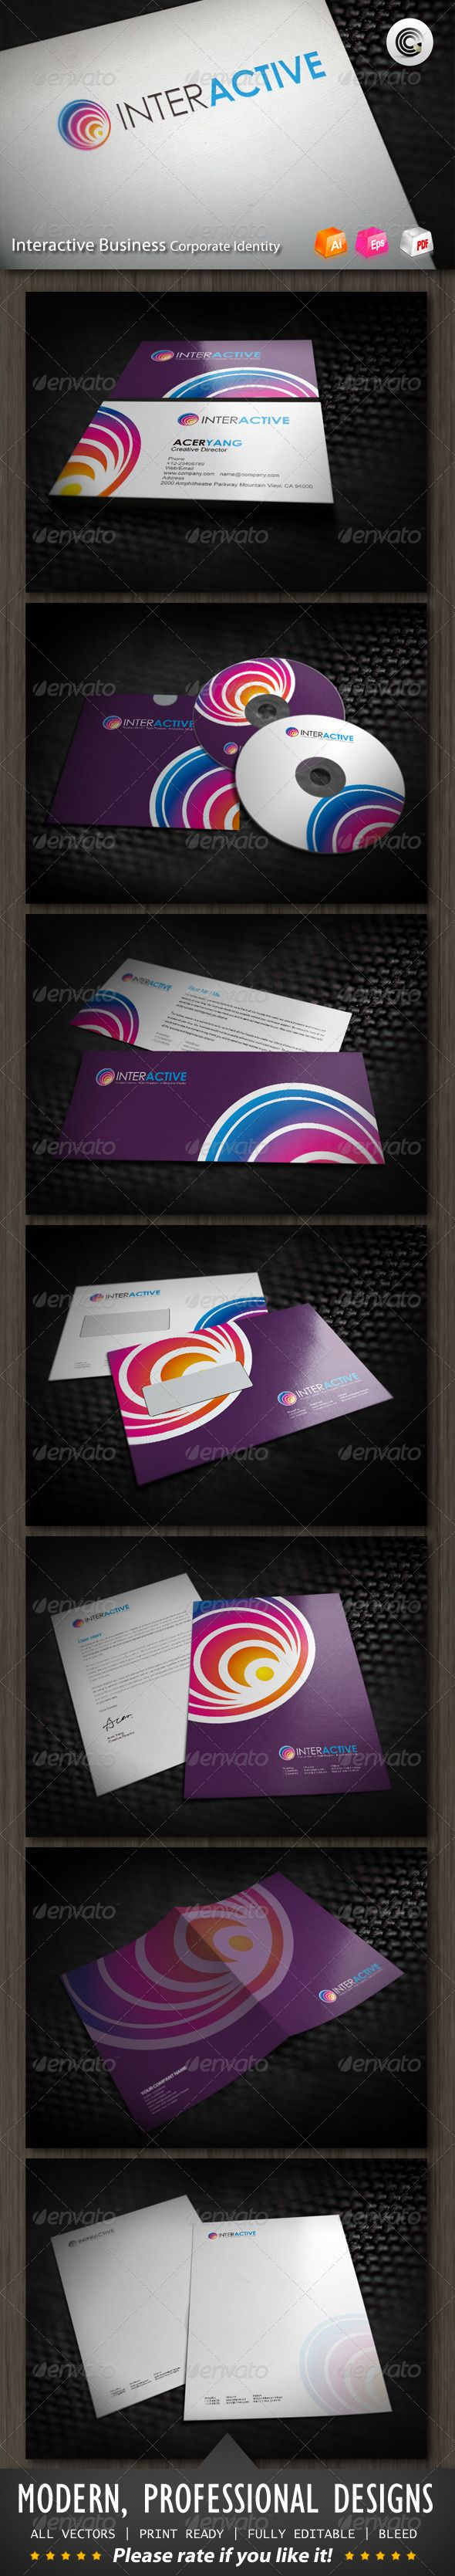 Interactive Media Business Corporate Identity Corporate